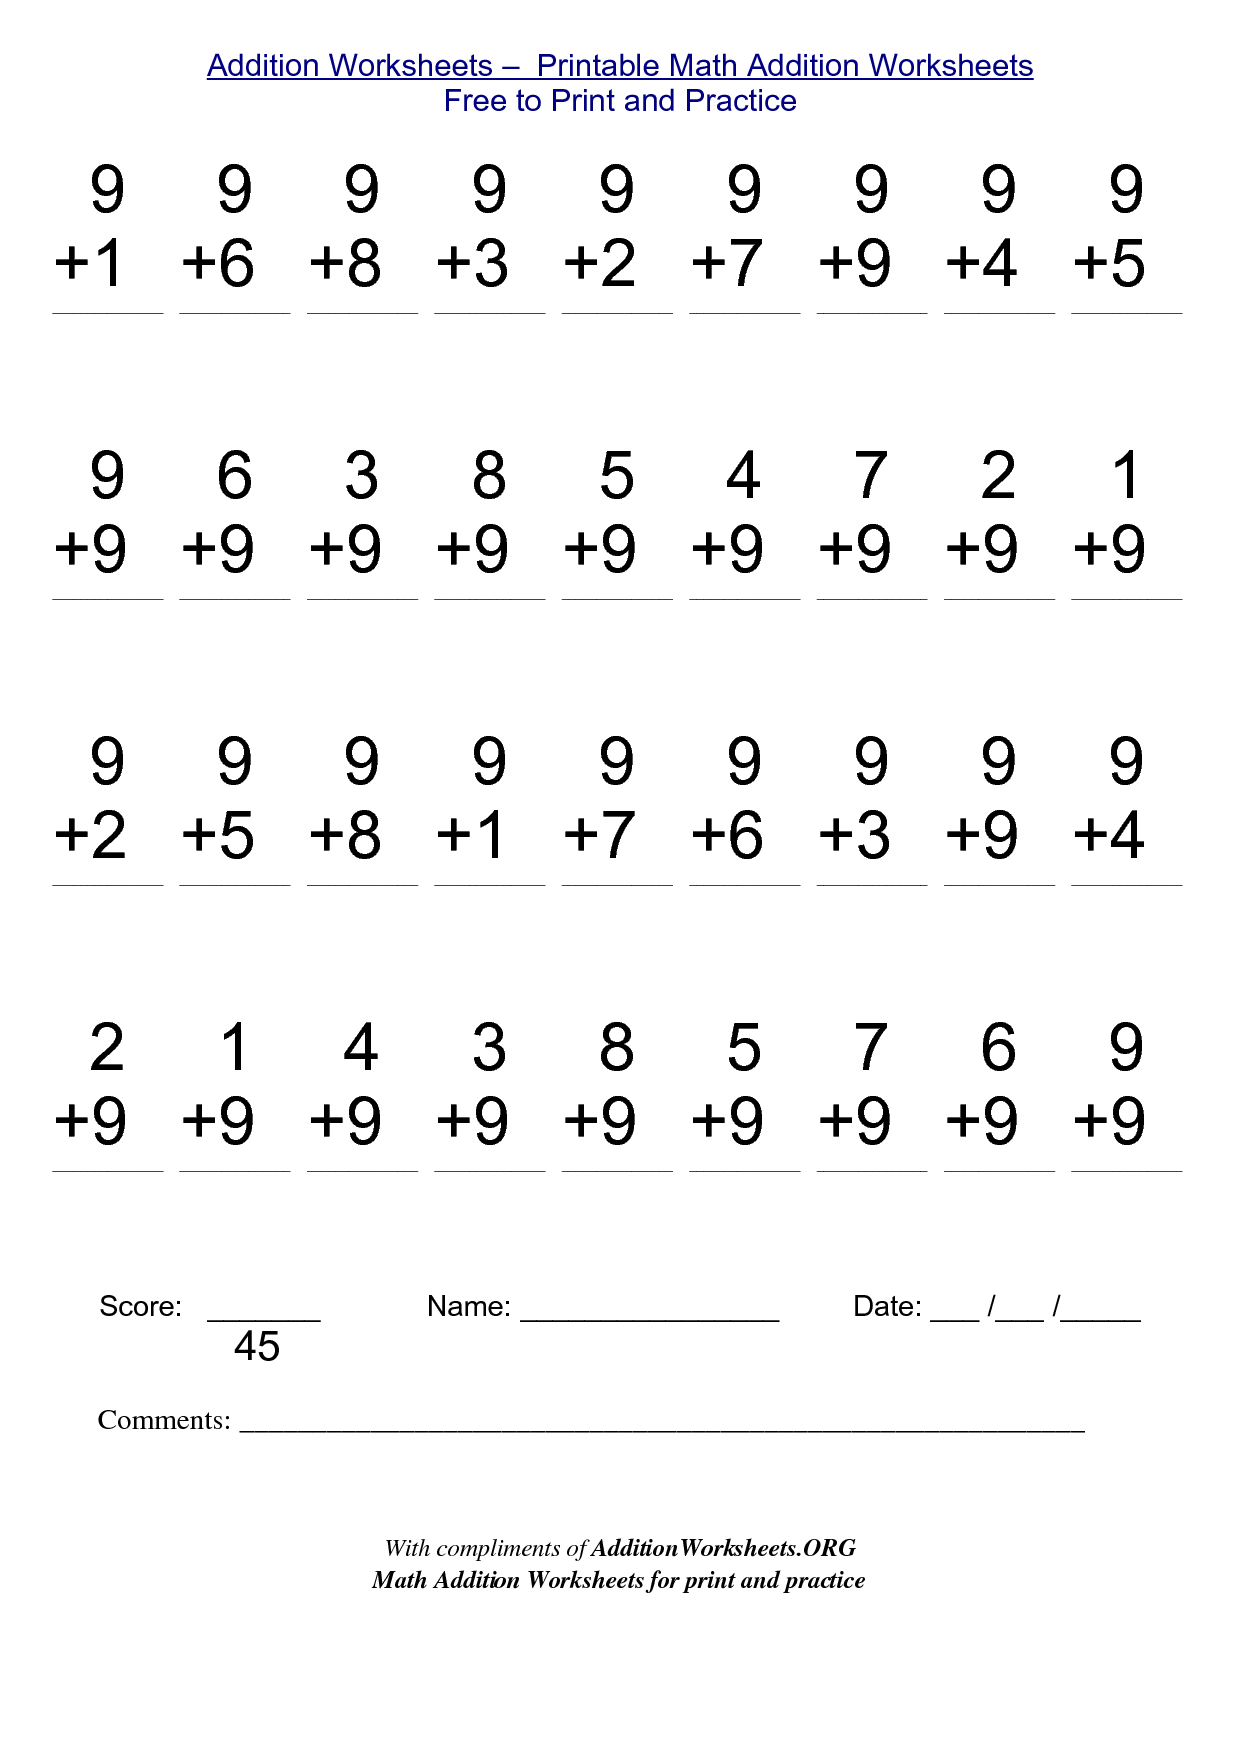 Math Worksheets for Free to Print Alot ME – Free Math Worksheets for Grade 1